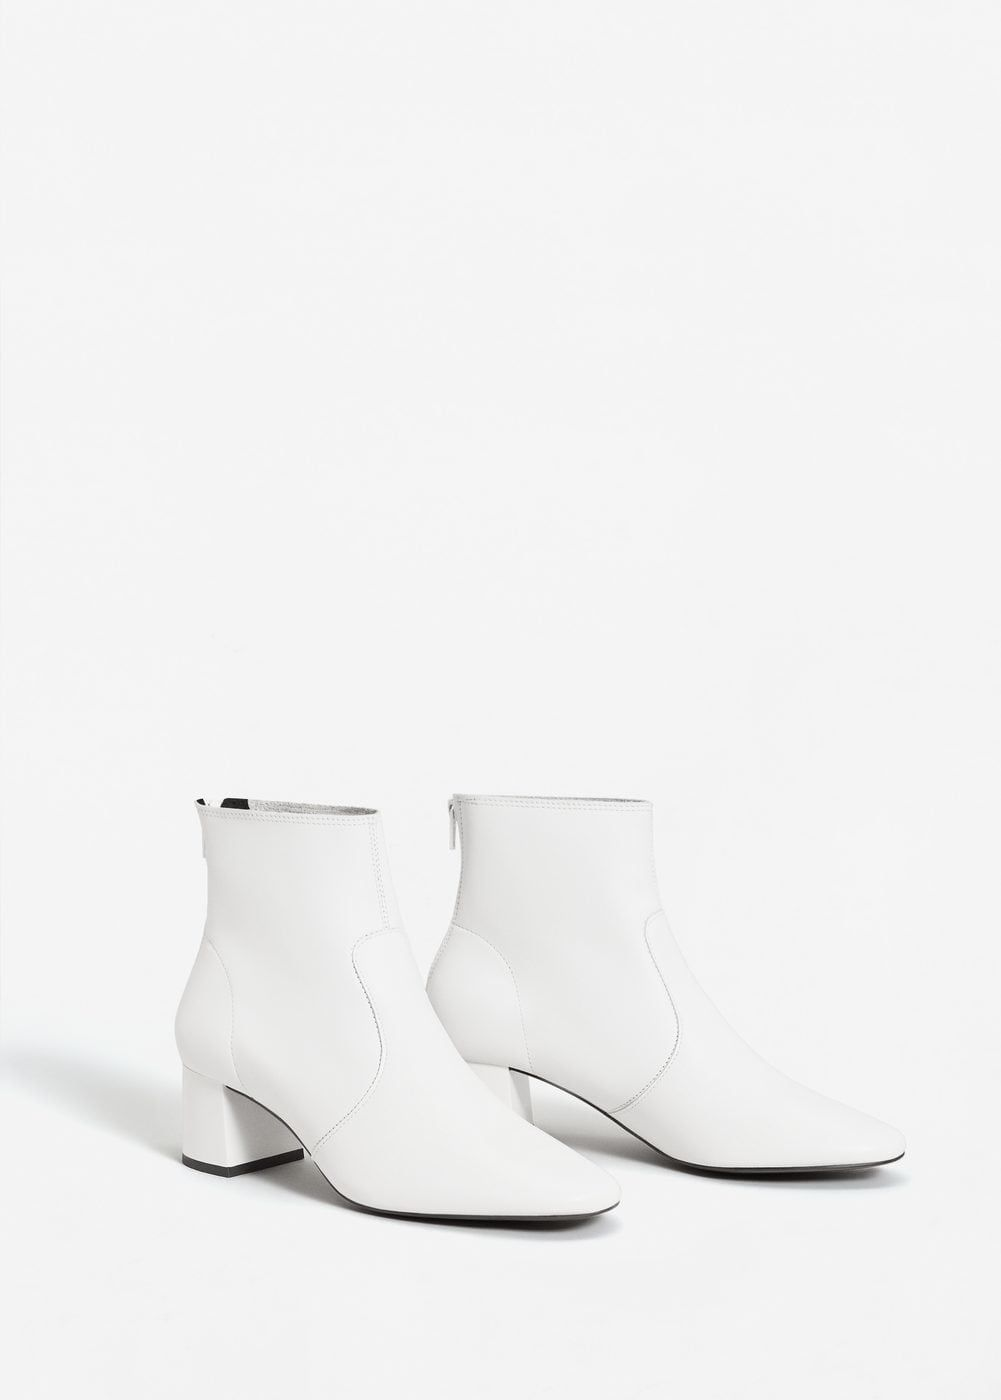 Boots, Leather ankle boots, Ankle boot